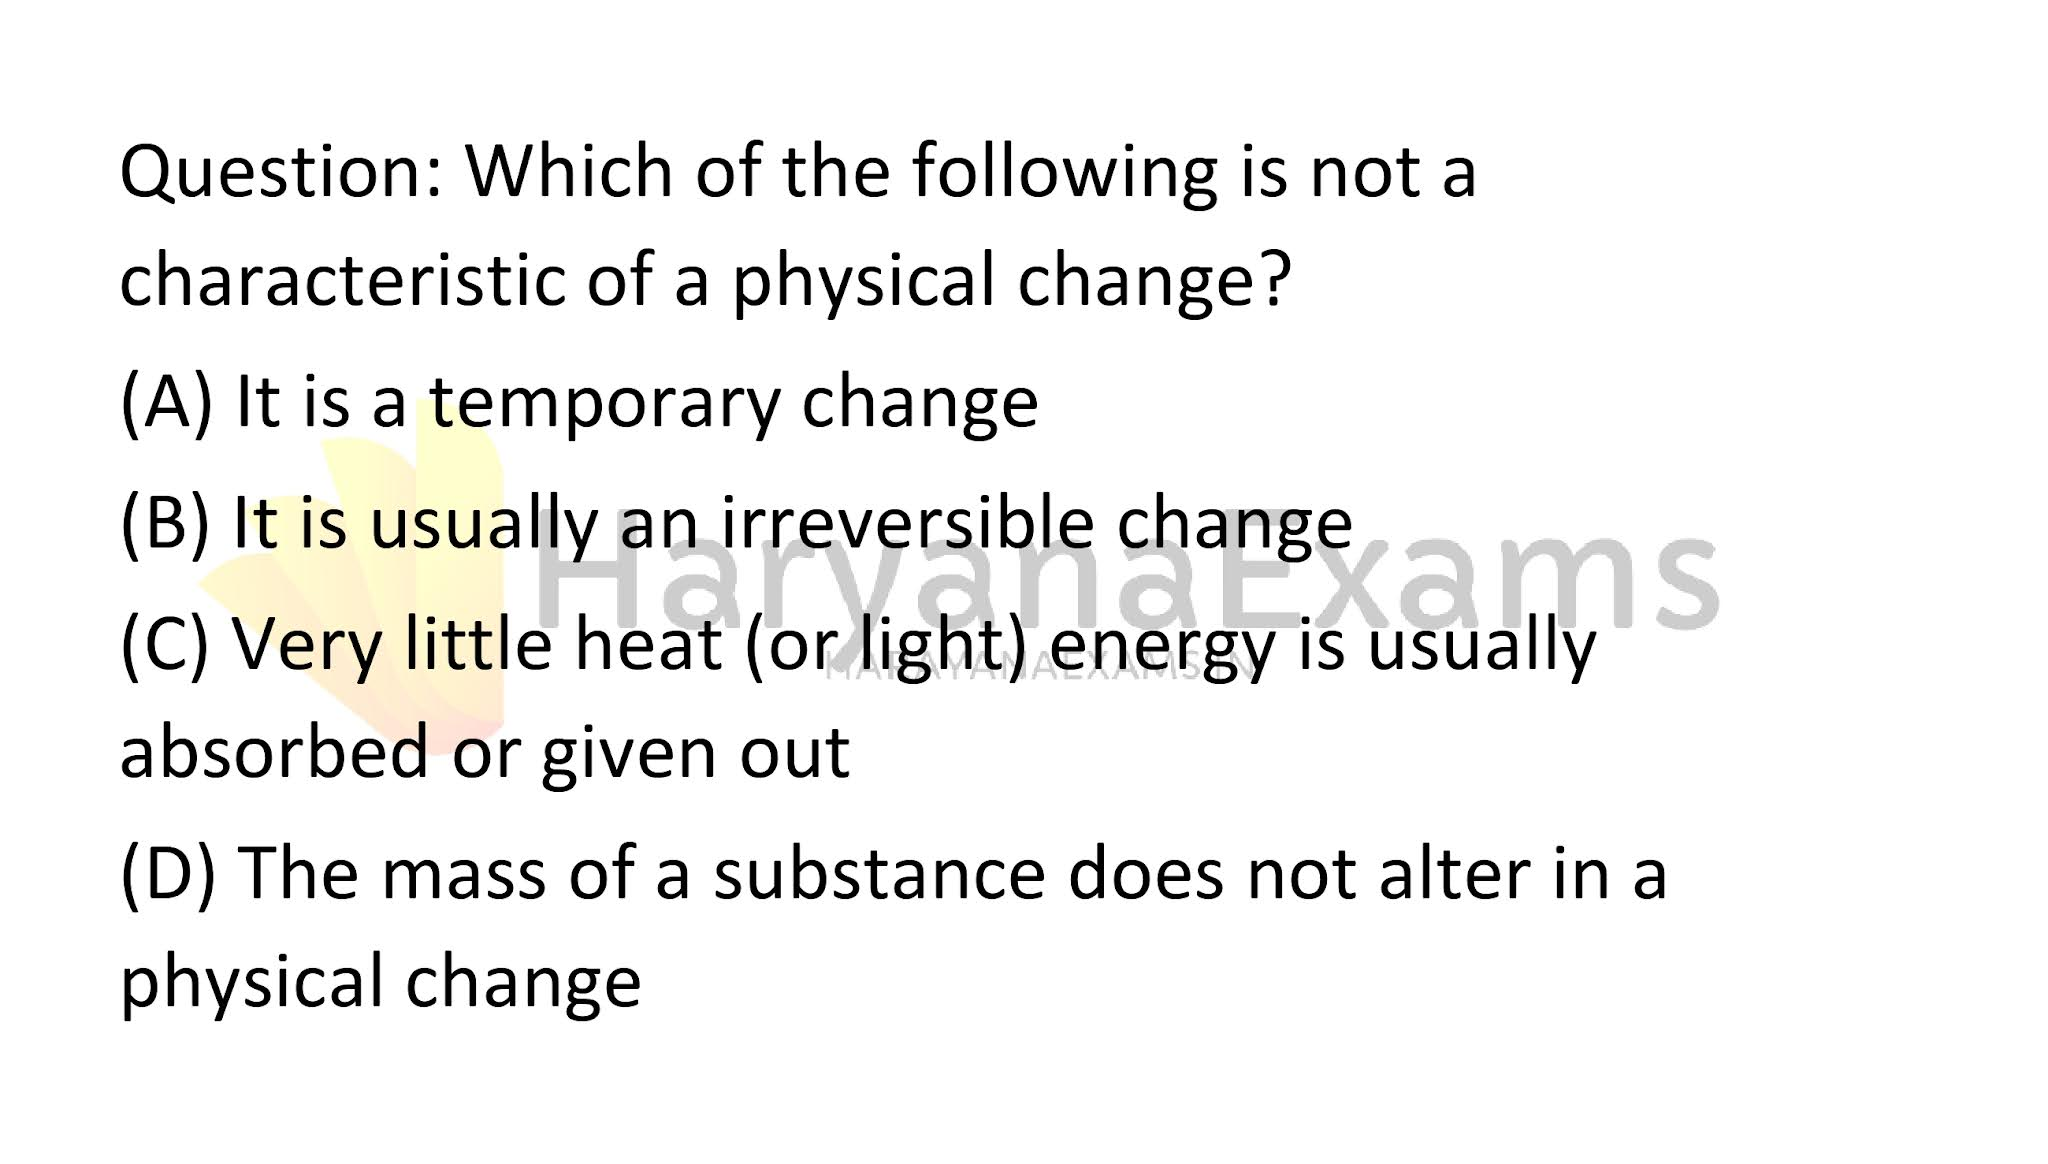 Which of the following is not a characteristic of a physical change?